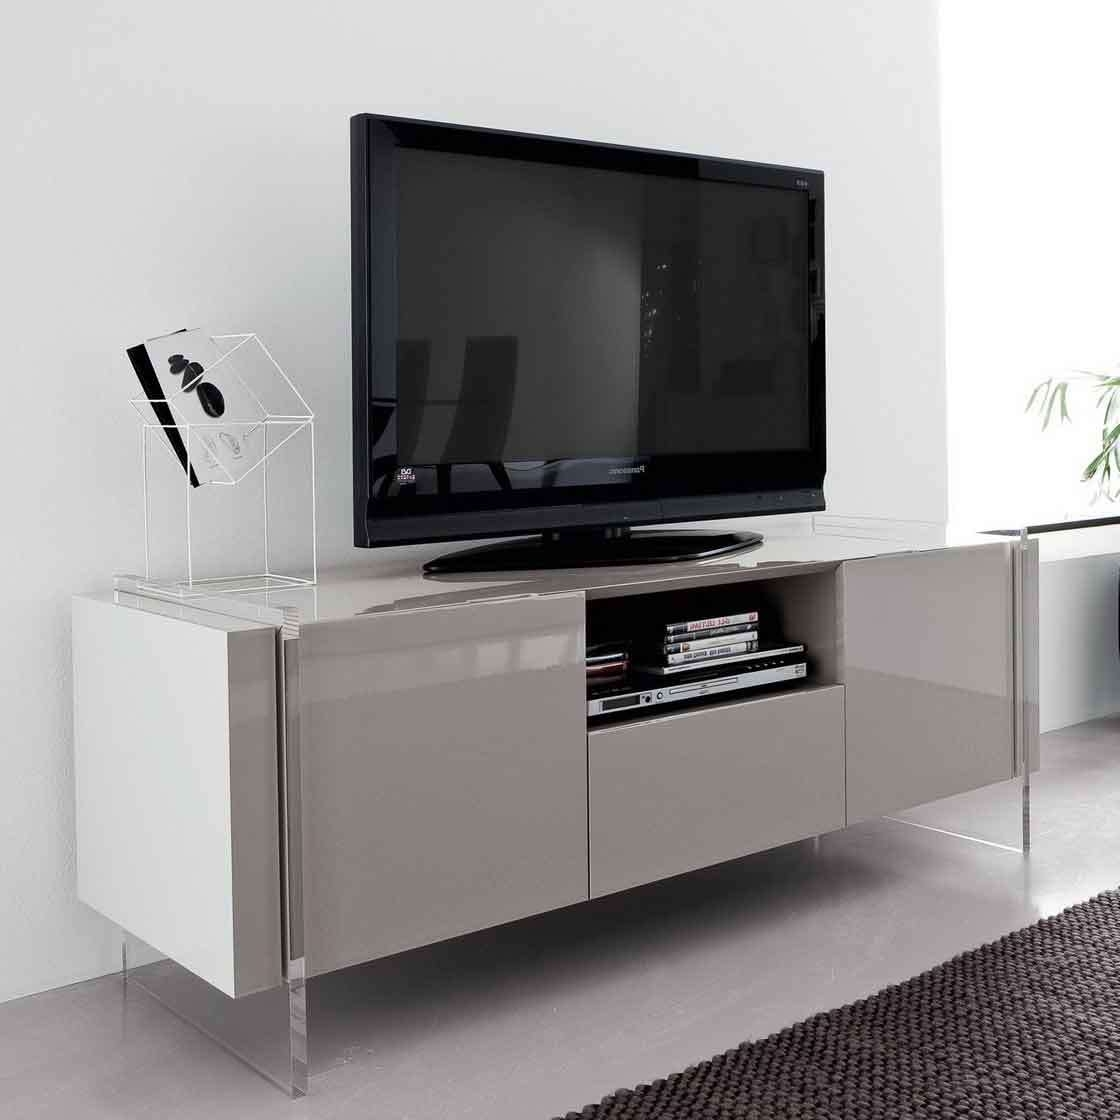 Innovative Tv Stand For Home Entertainment Room With Three Pertaining To Acrylic Tv Stands (Gallery 6 of 15)